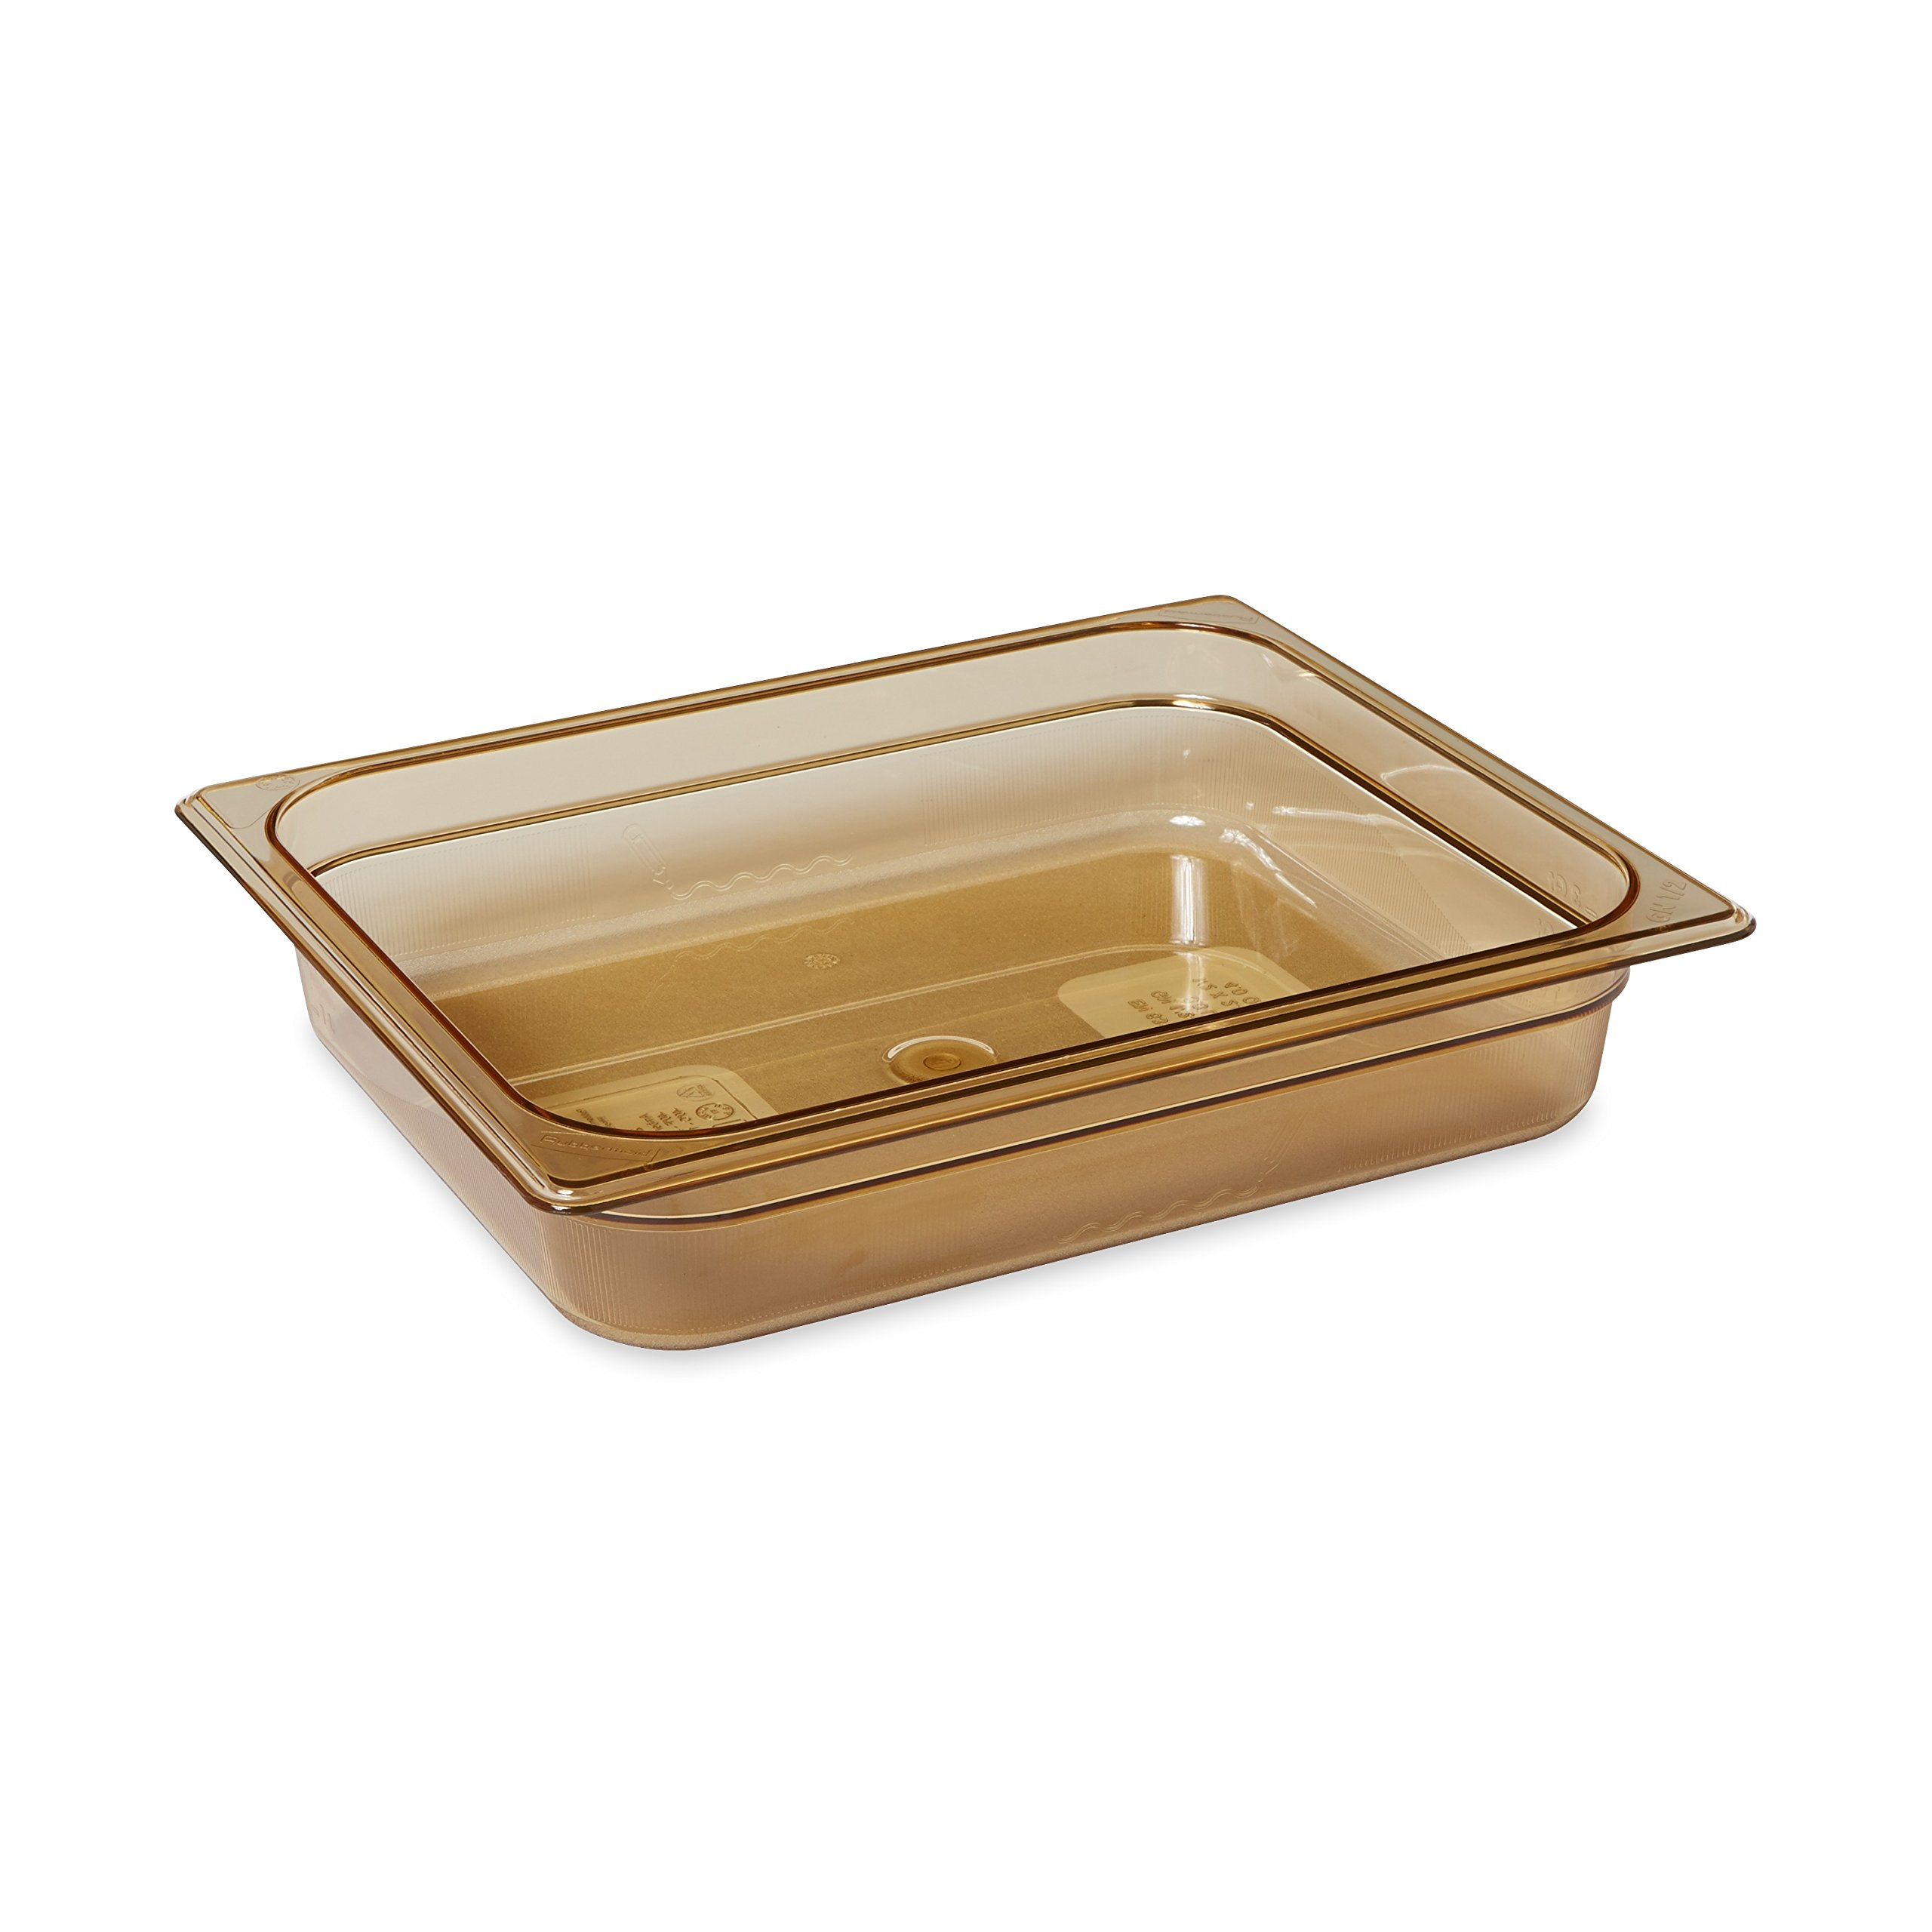 Rubbermaid Commercial Products FG223P00AMBR 1/2 Size 4-Quart Hot Food Pan, Amber